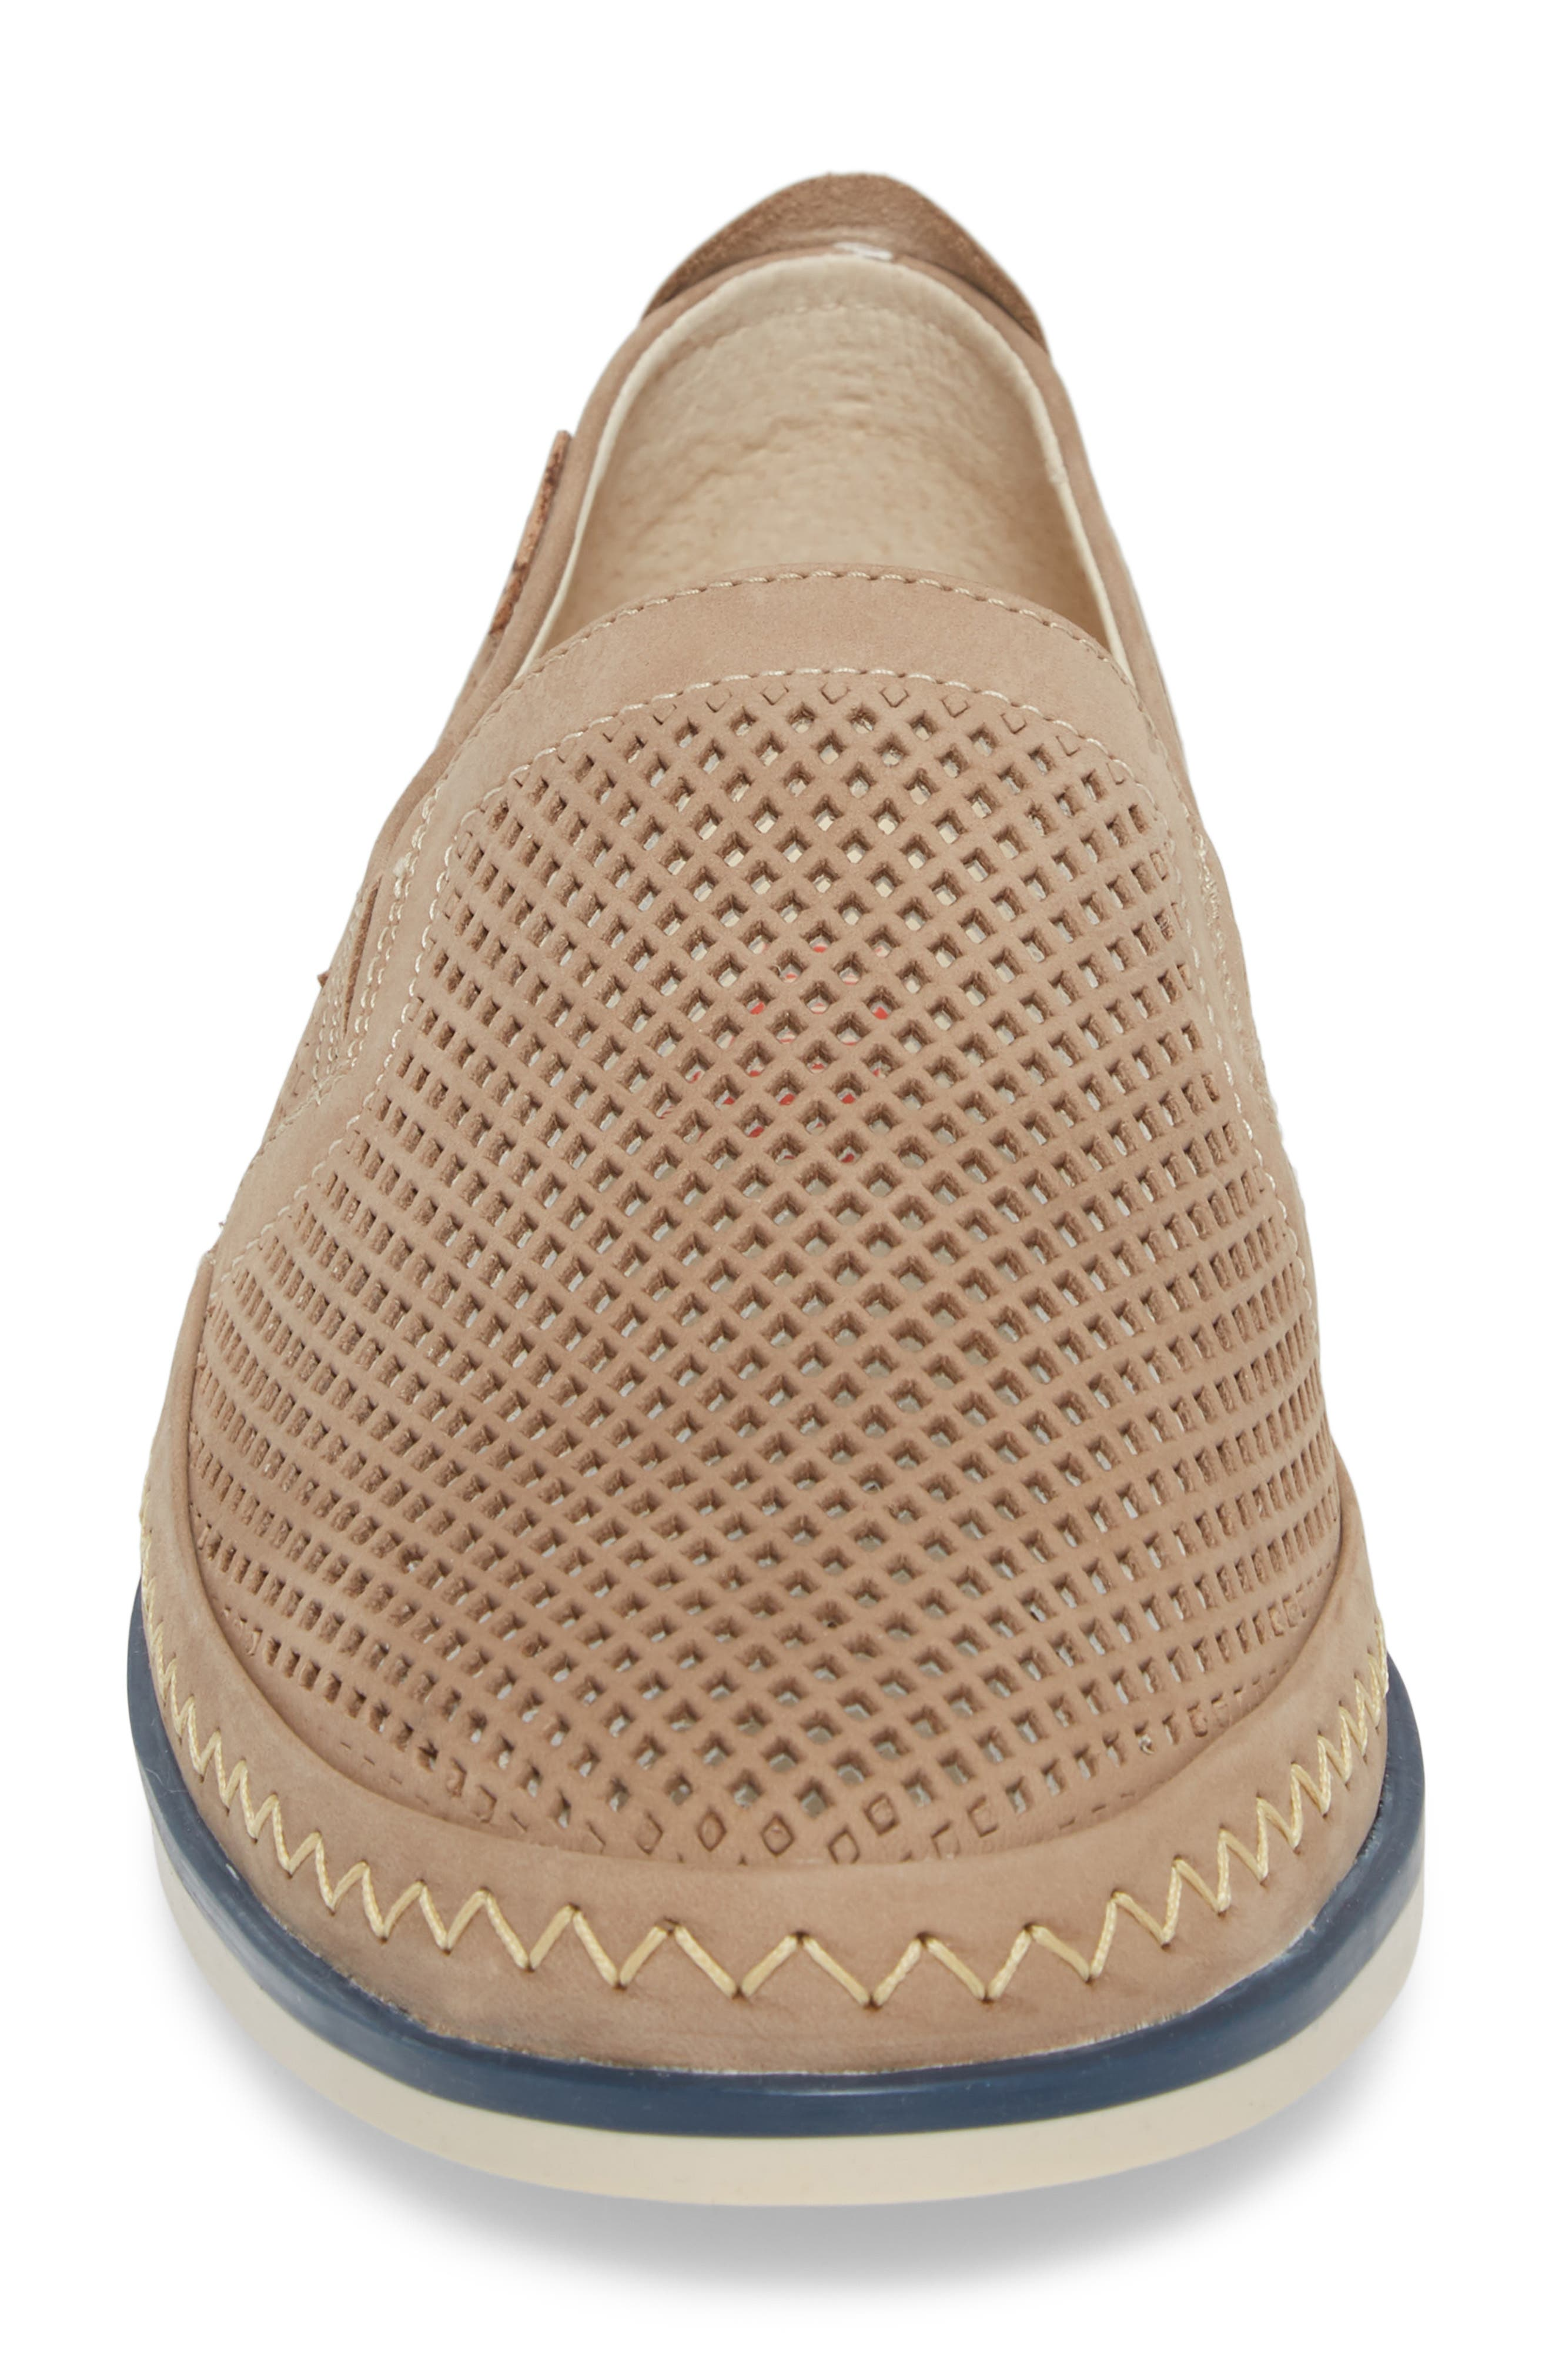 Linares Slip-On Loafer,                             Alternate thumbnail 4, color,                             Piedra Leather